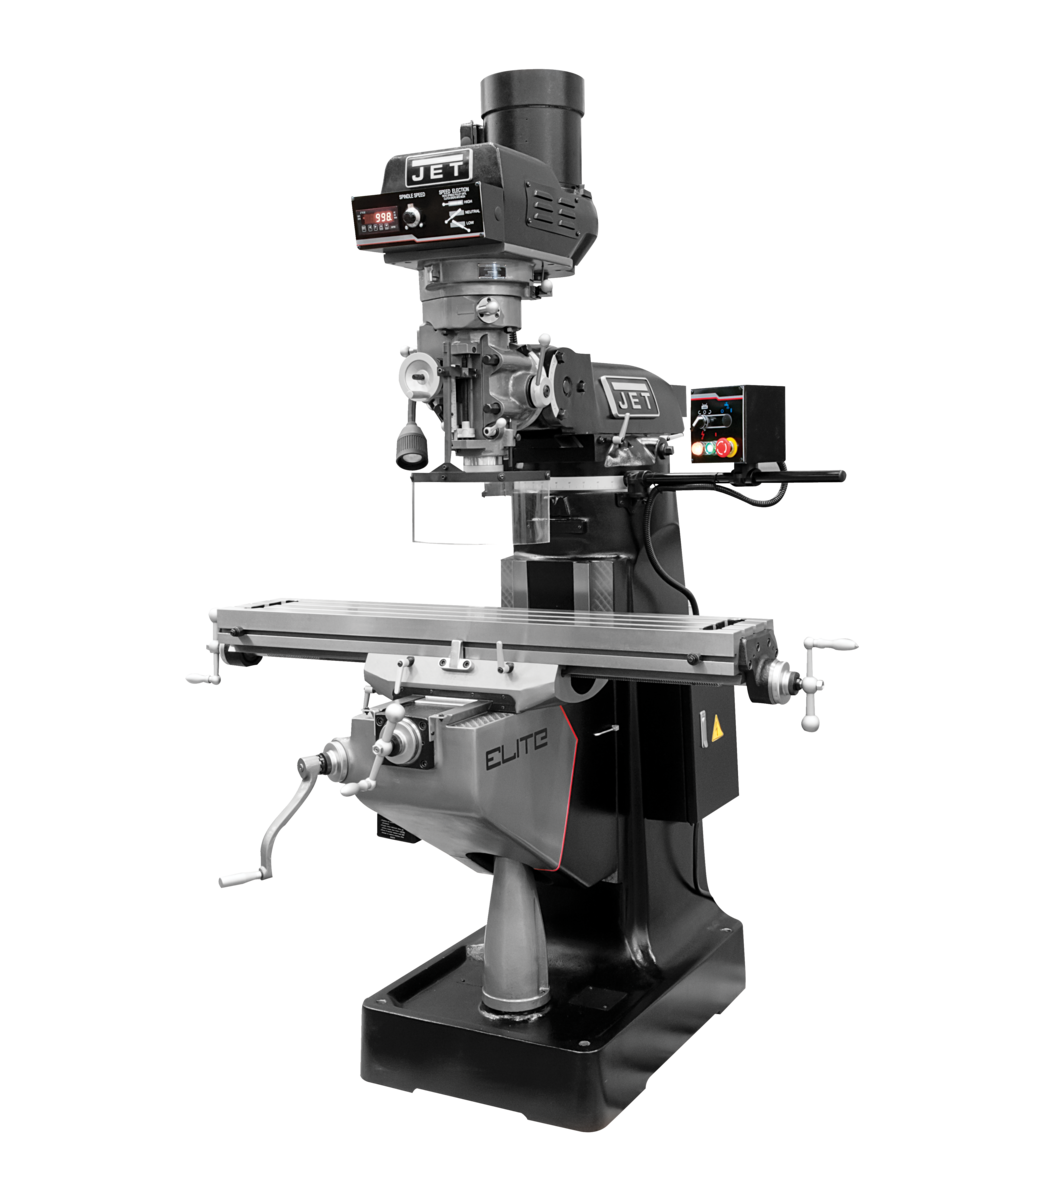 EVS-949 Mill with 3-Axis ACU-RITE 303 (Knee) DRO and Servo X, Y-Axis Powerfeeds and USA Air Powered Draw Bar